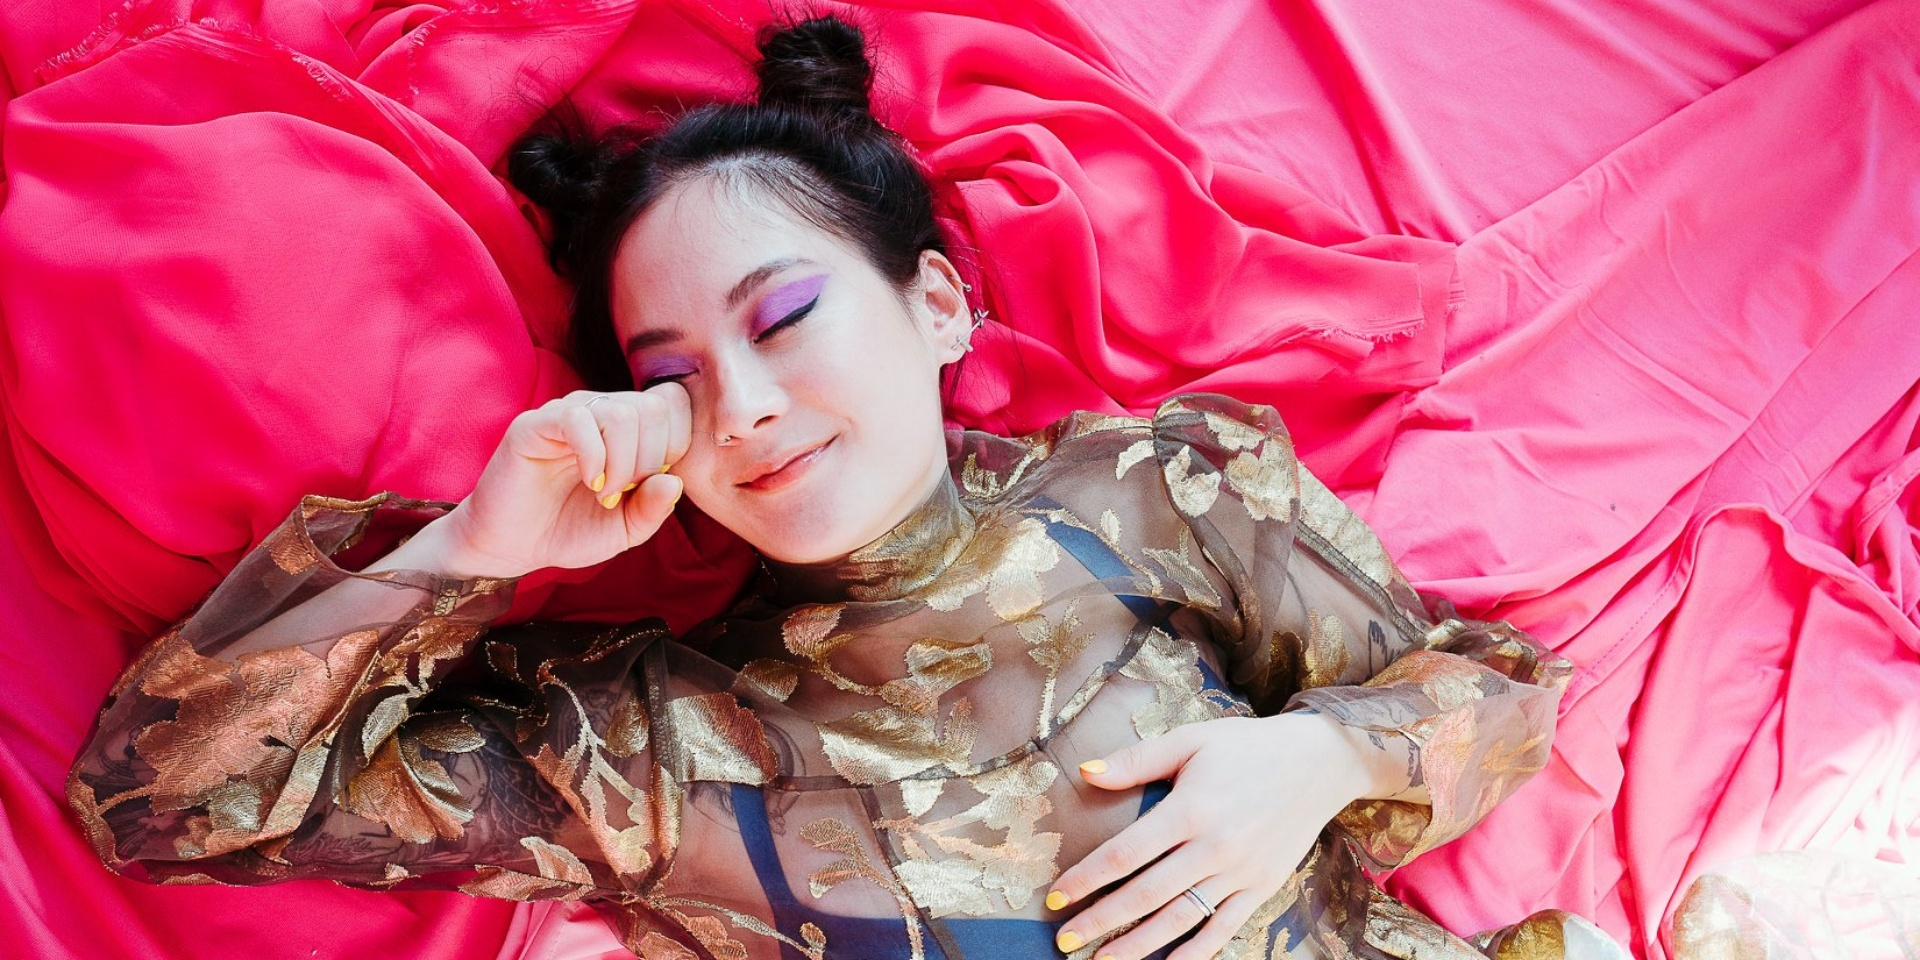 Japanese Breakfast to perform in Indonesia